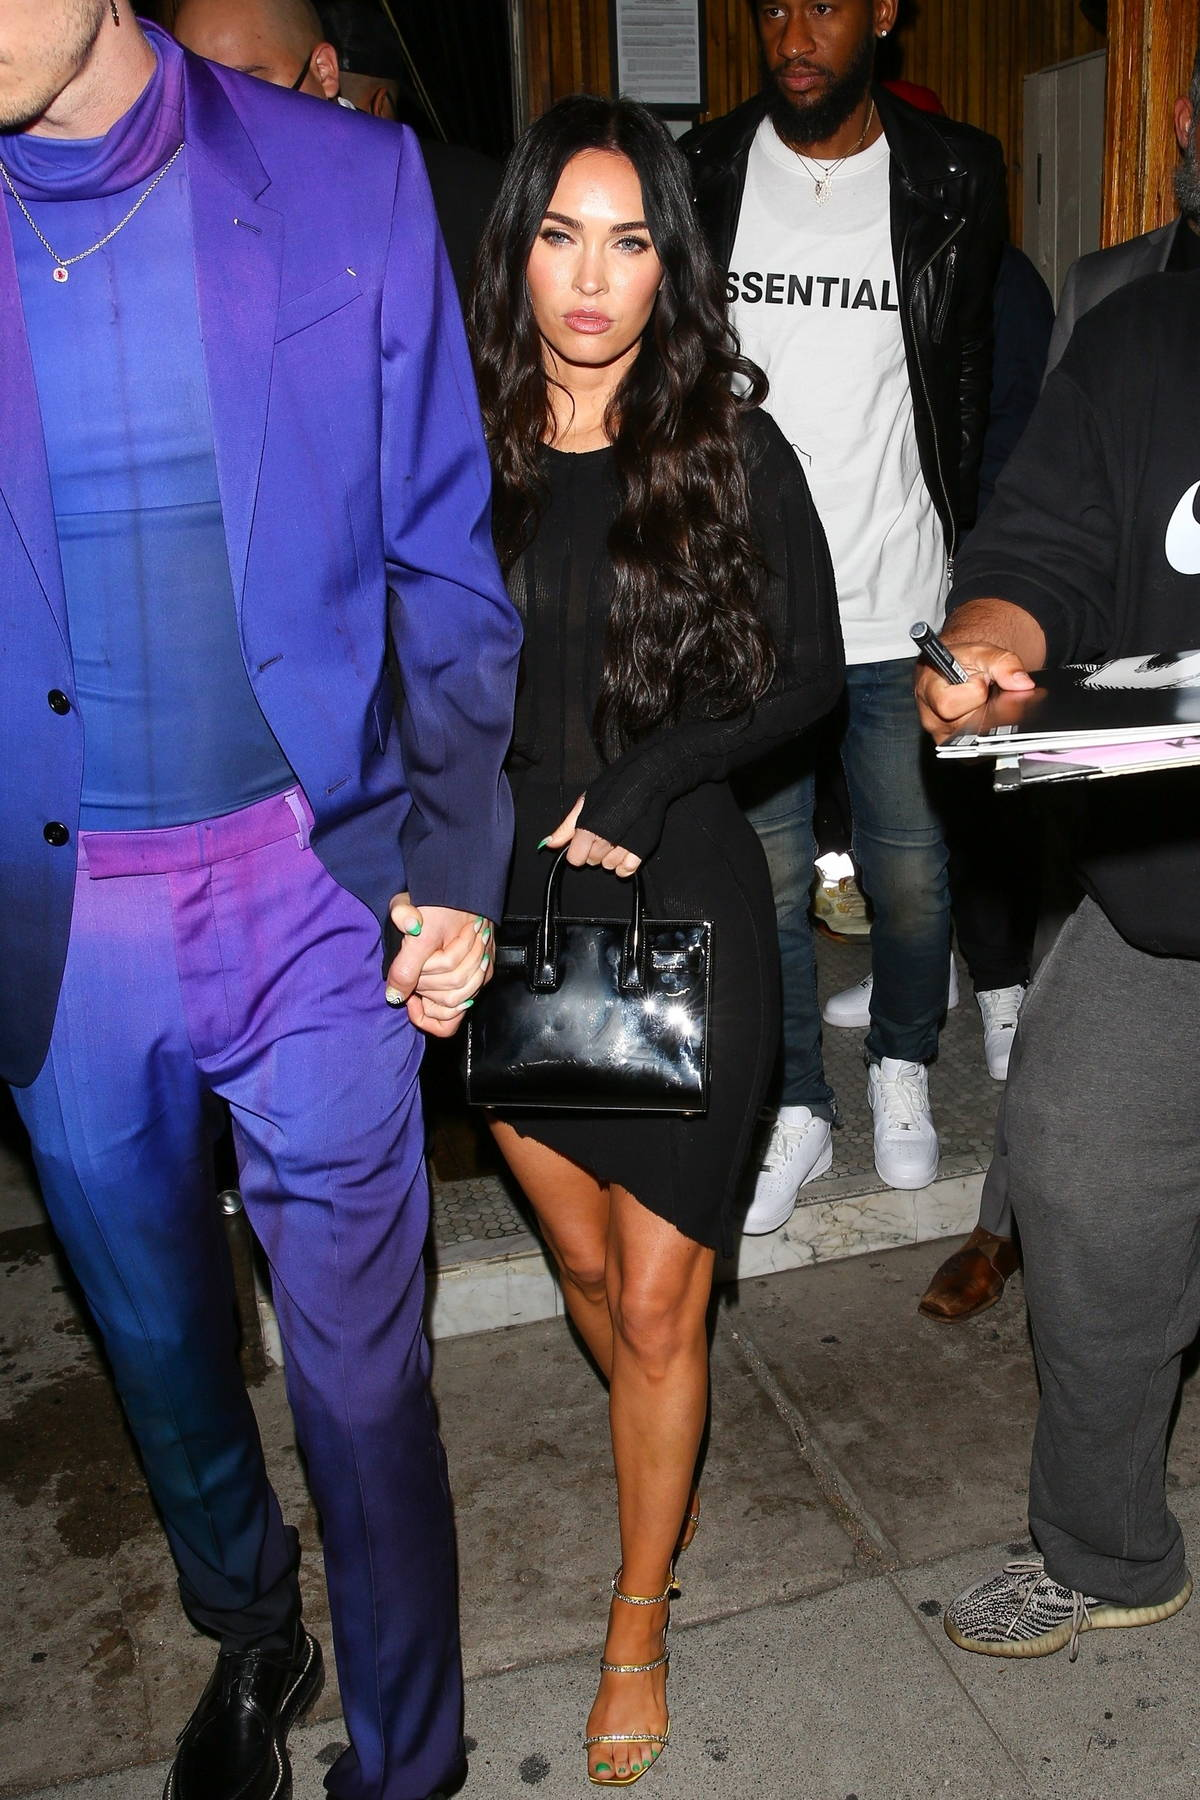 Megan Fox looks stunning while attending an event with Machine Gun Kelly at The Nice Guy in West Hollywood, California